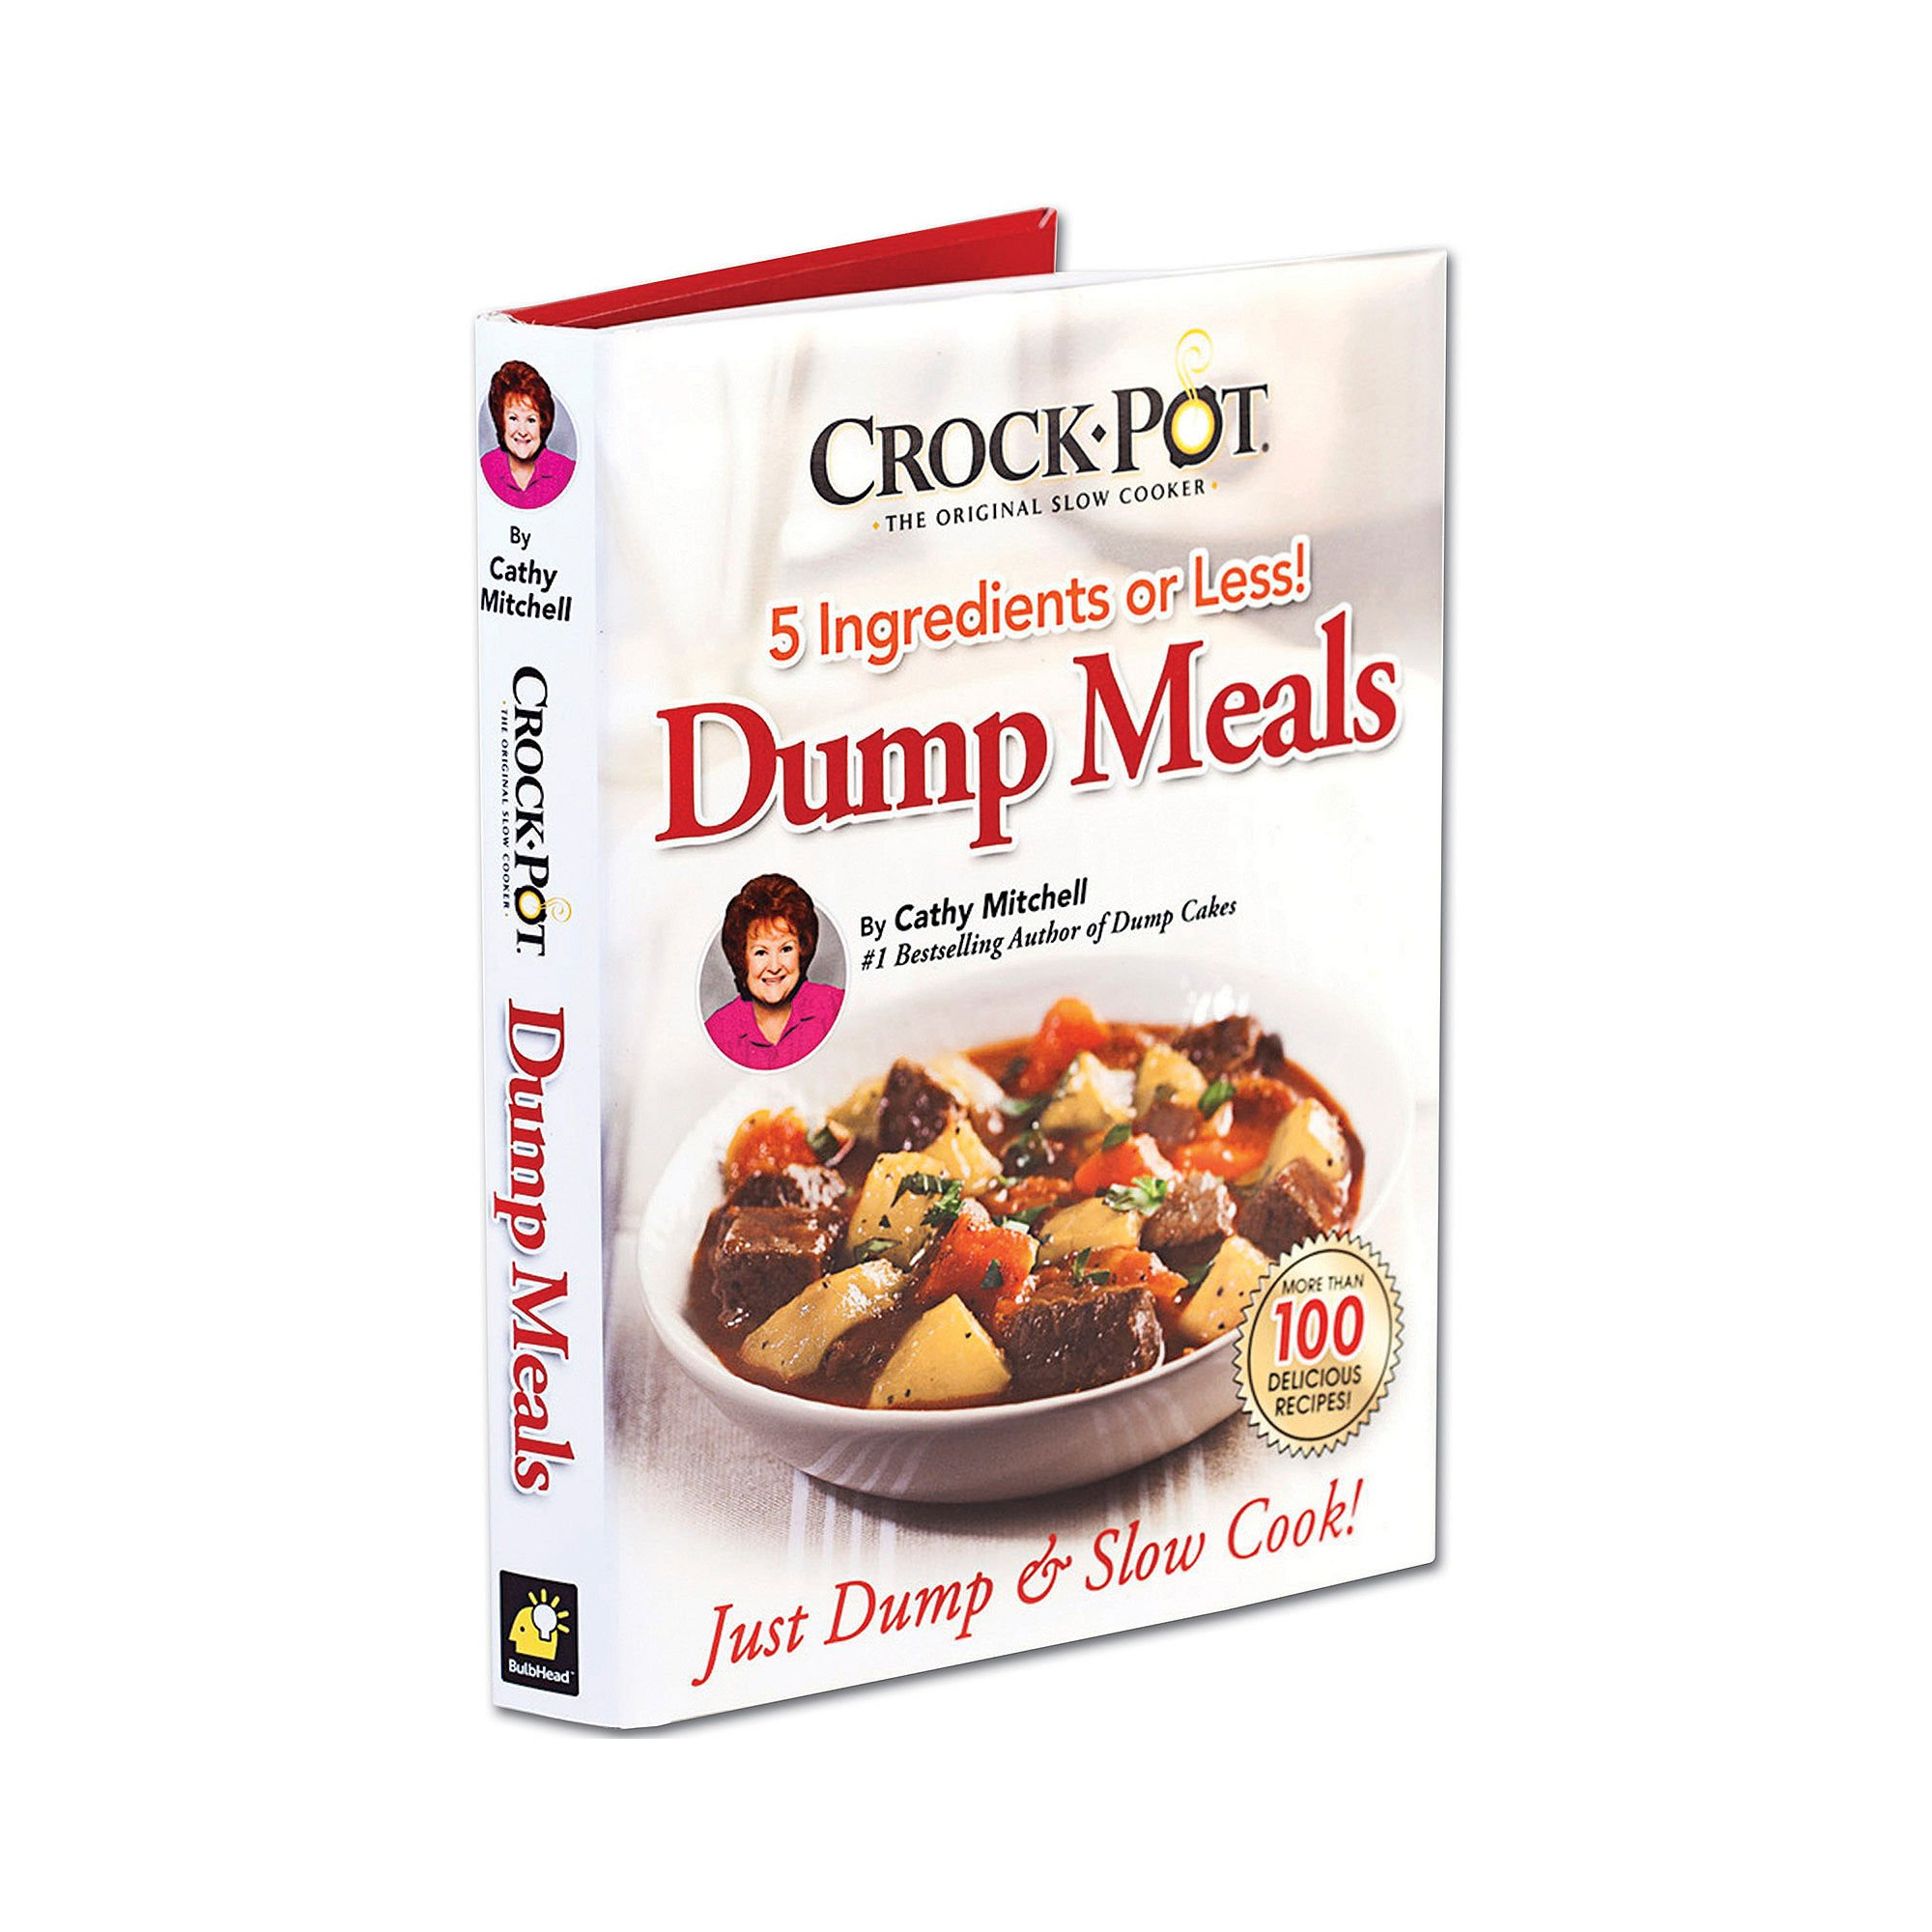 Crock pot dump meals 5 ingredients or less just dump and slow cook crock pot dump meals 5 ingredients or less just dump and slow cook cathy mitchell 0798578706447 amazon books forumfinder Image collections